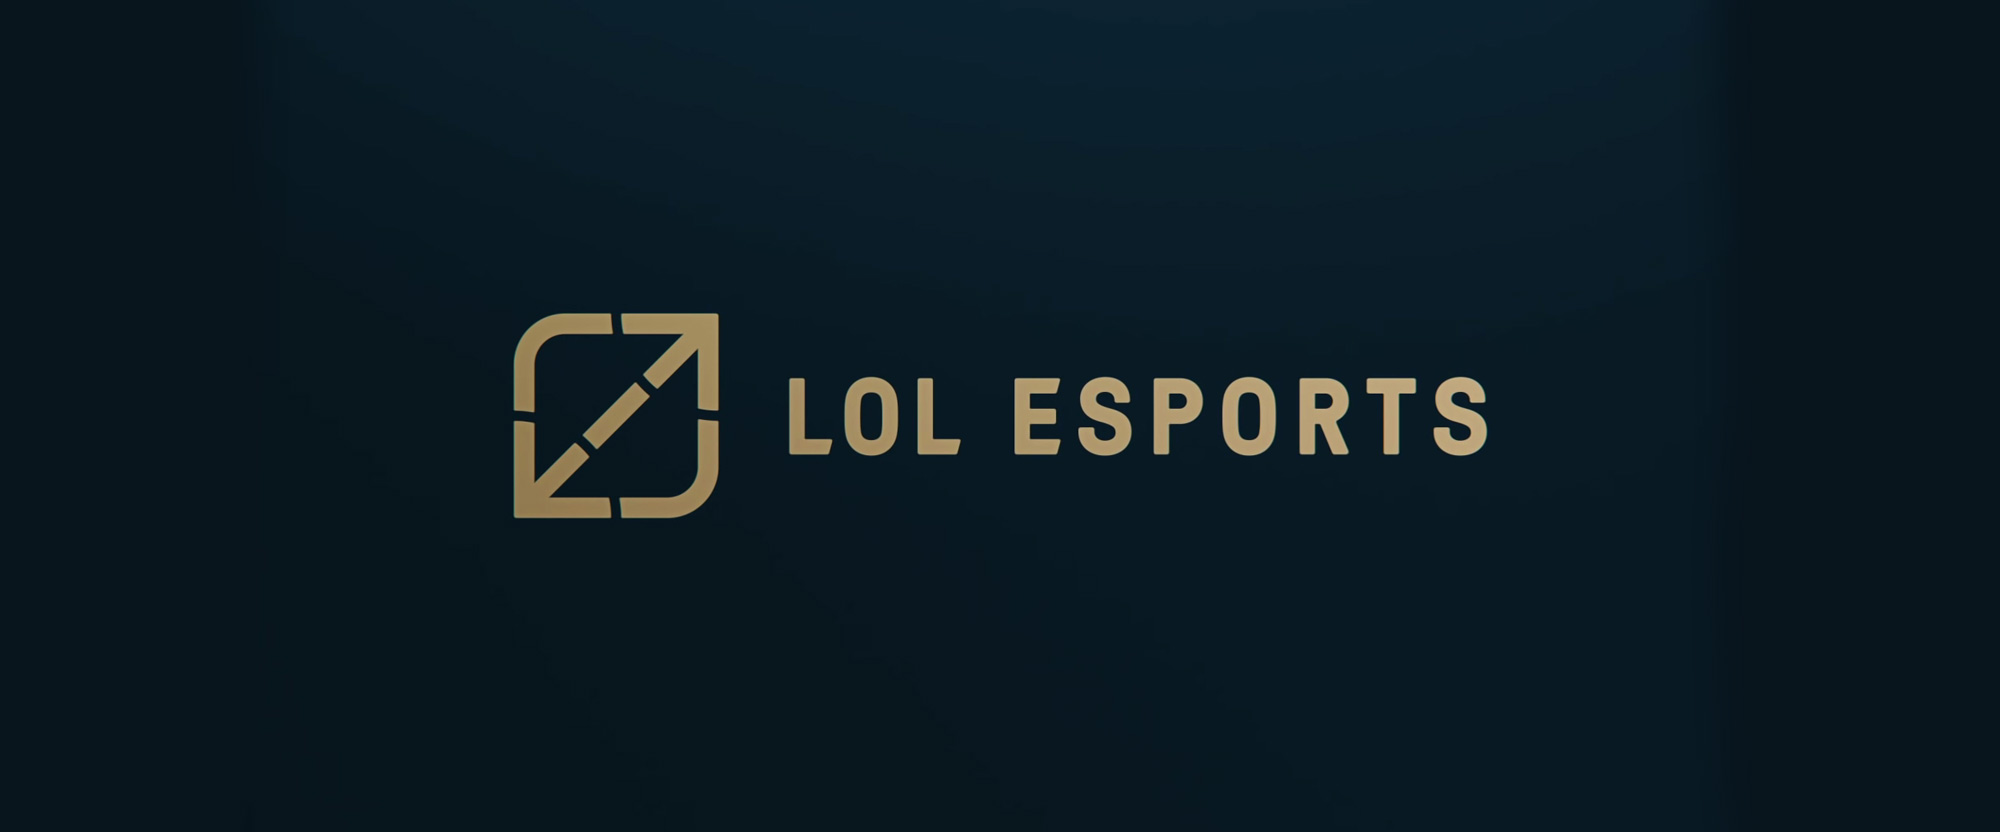 New Logo and Identity for LoL Esports